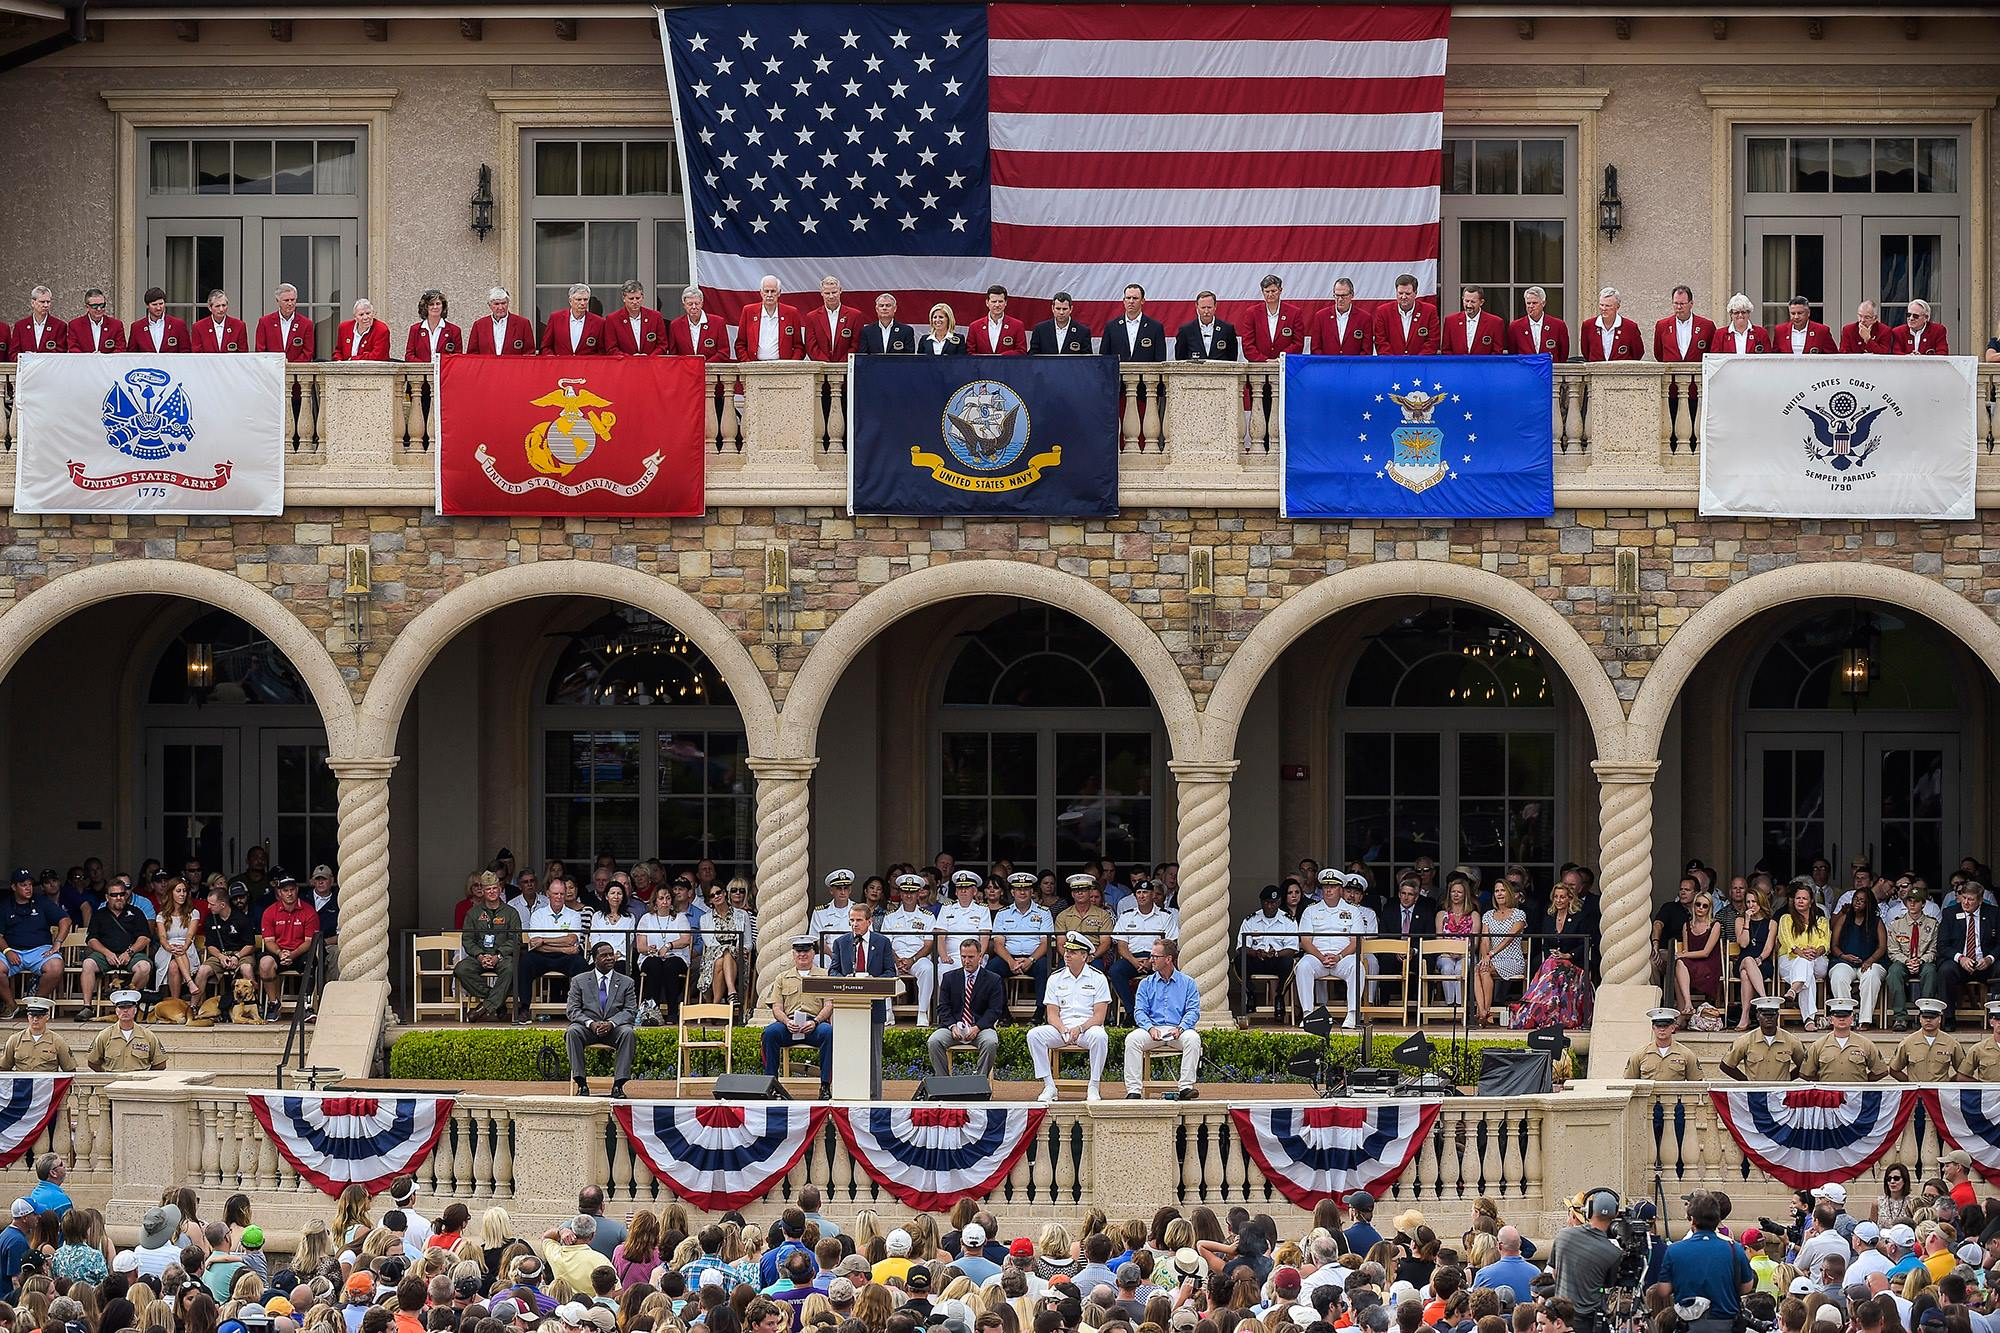 Jacksonville Mayor Alvin Brown, Sergeant Major Bryan Battaglia, PGA TOUR Commissioner Tim Finchem, Steve Sands of NBC Golf Channel, Admiral Phil Davidson and golfer David Duval take part in Military Appreciation Day at the 2015 Players Championship.